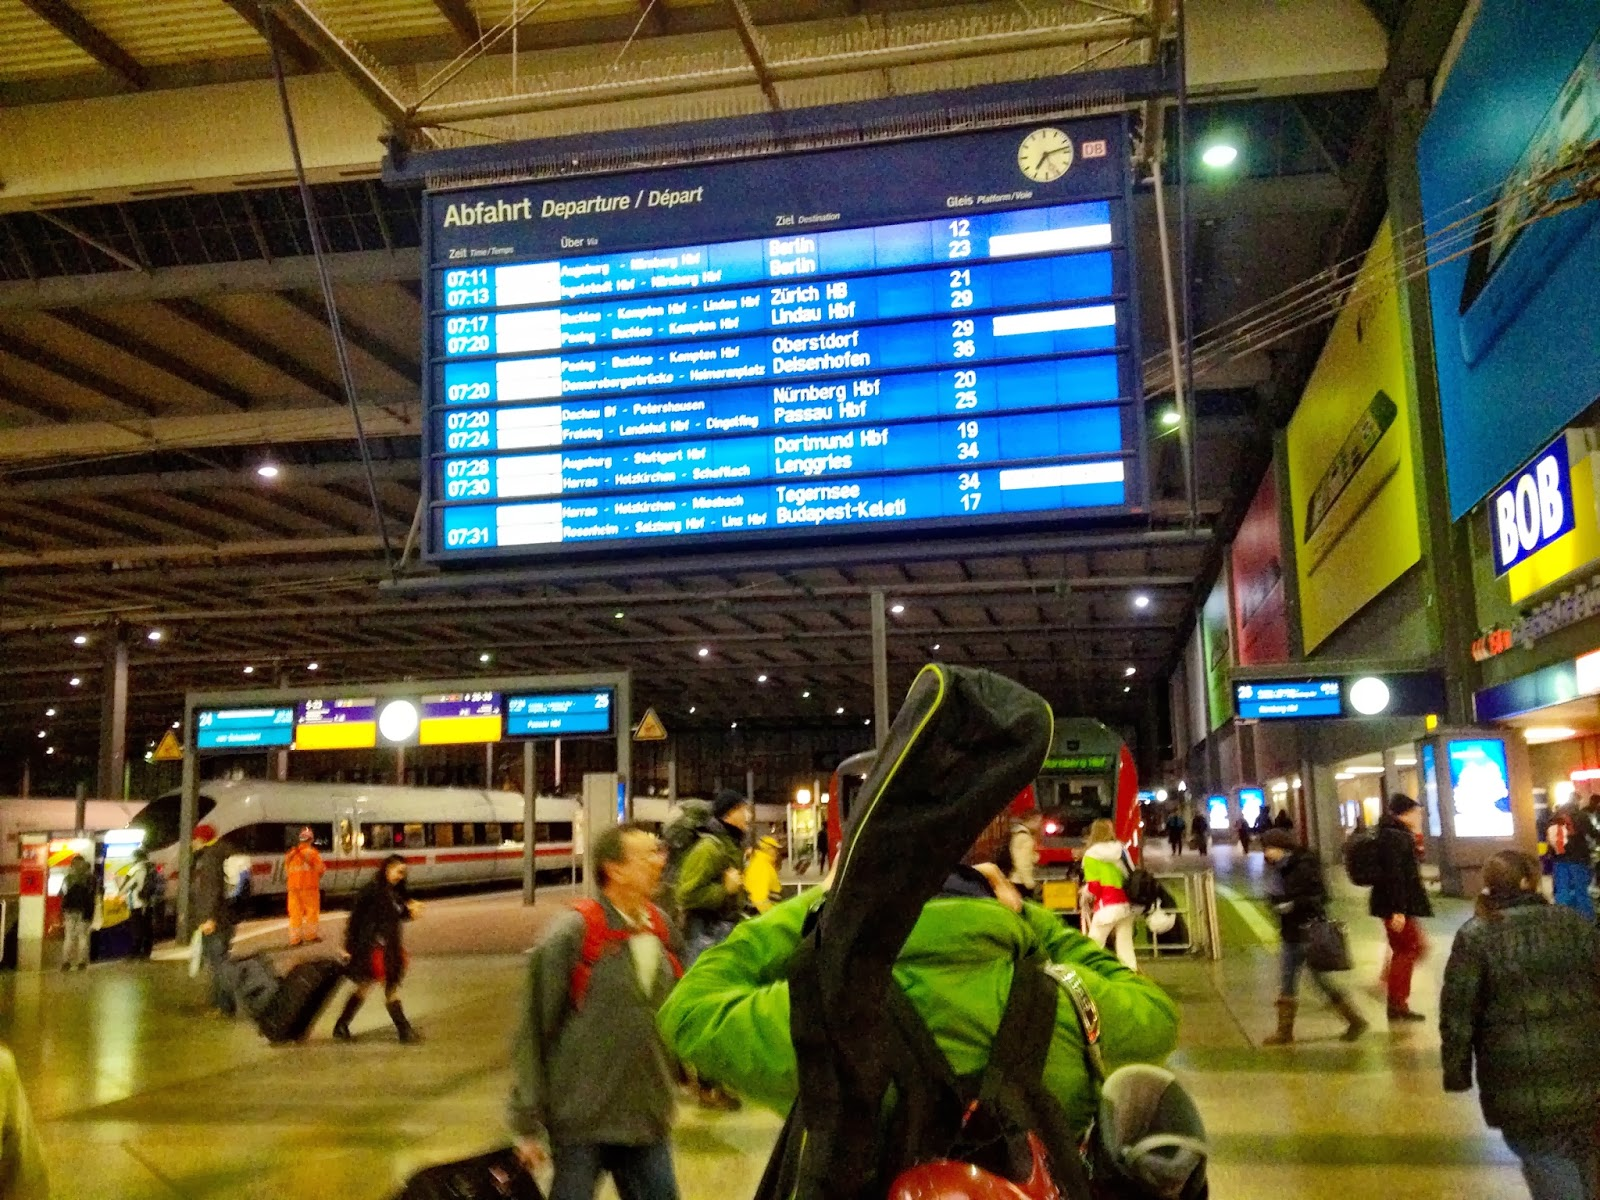 Looking for the Garmish ski train in Munich's Hauptbahnhof